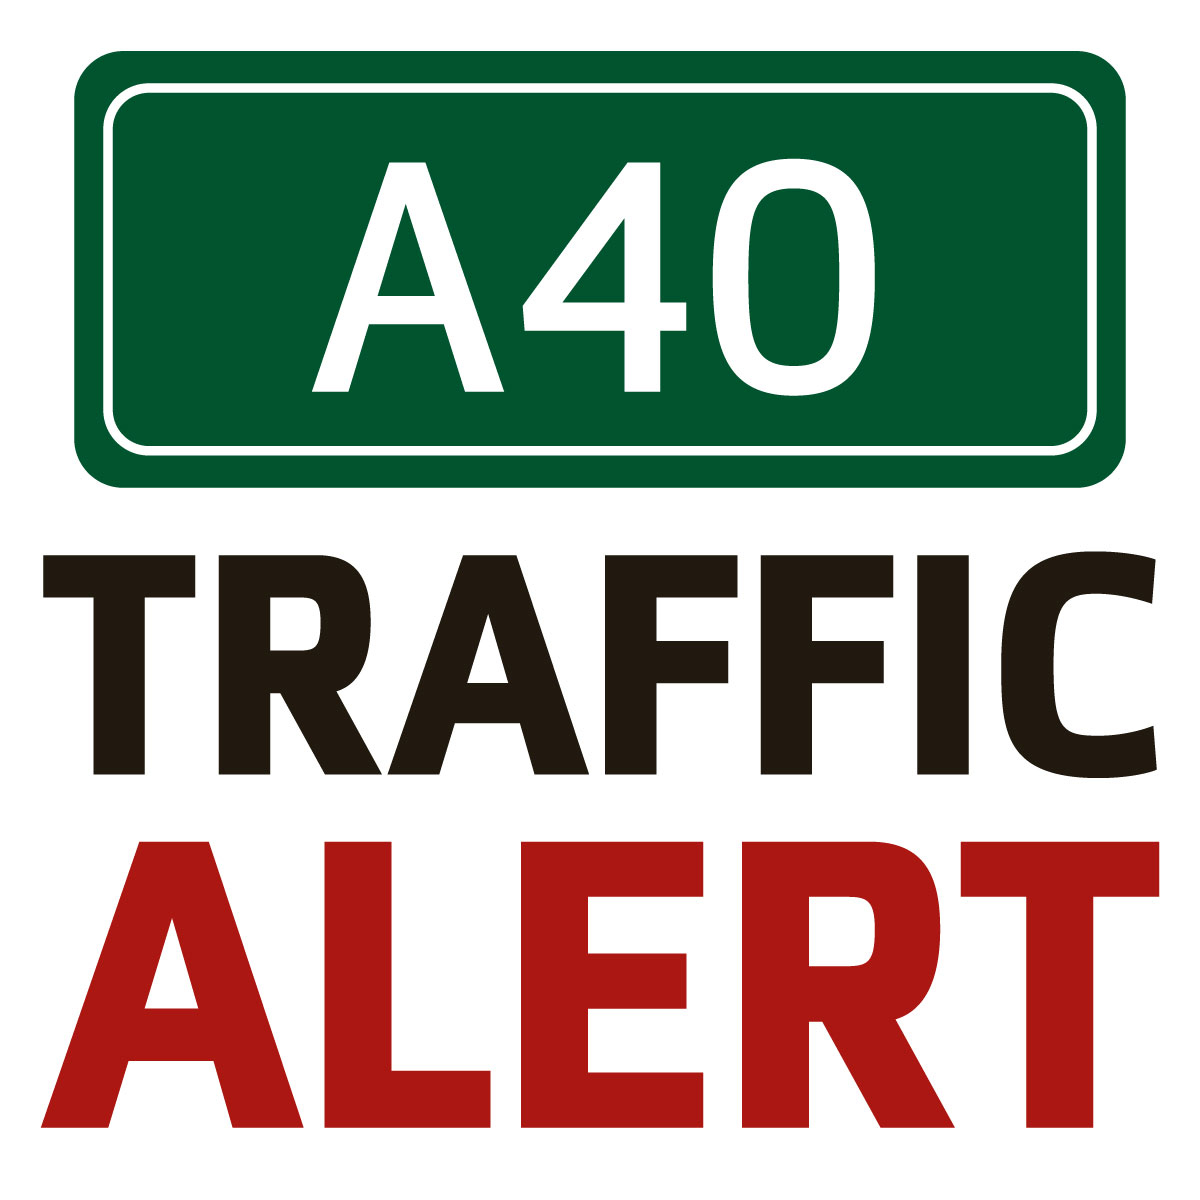 Two mile queues on the A40